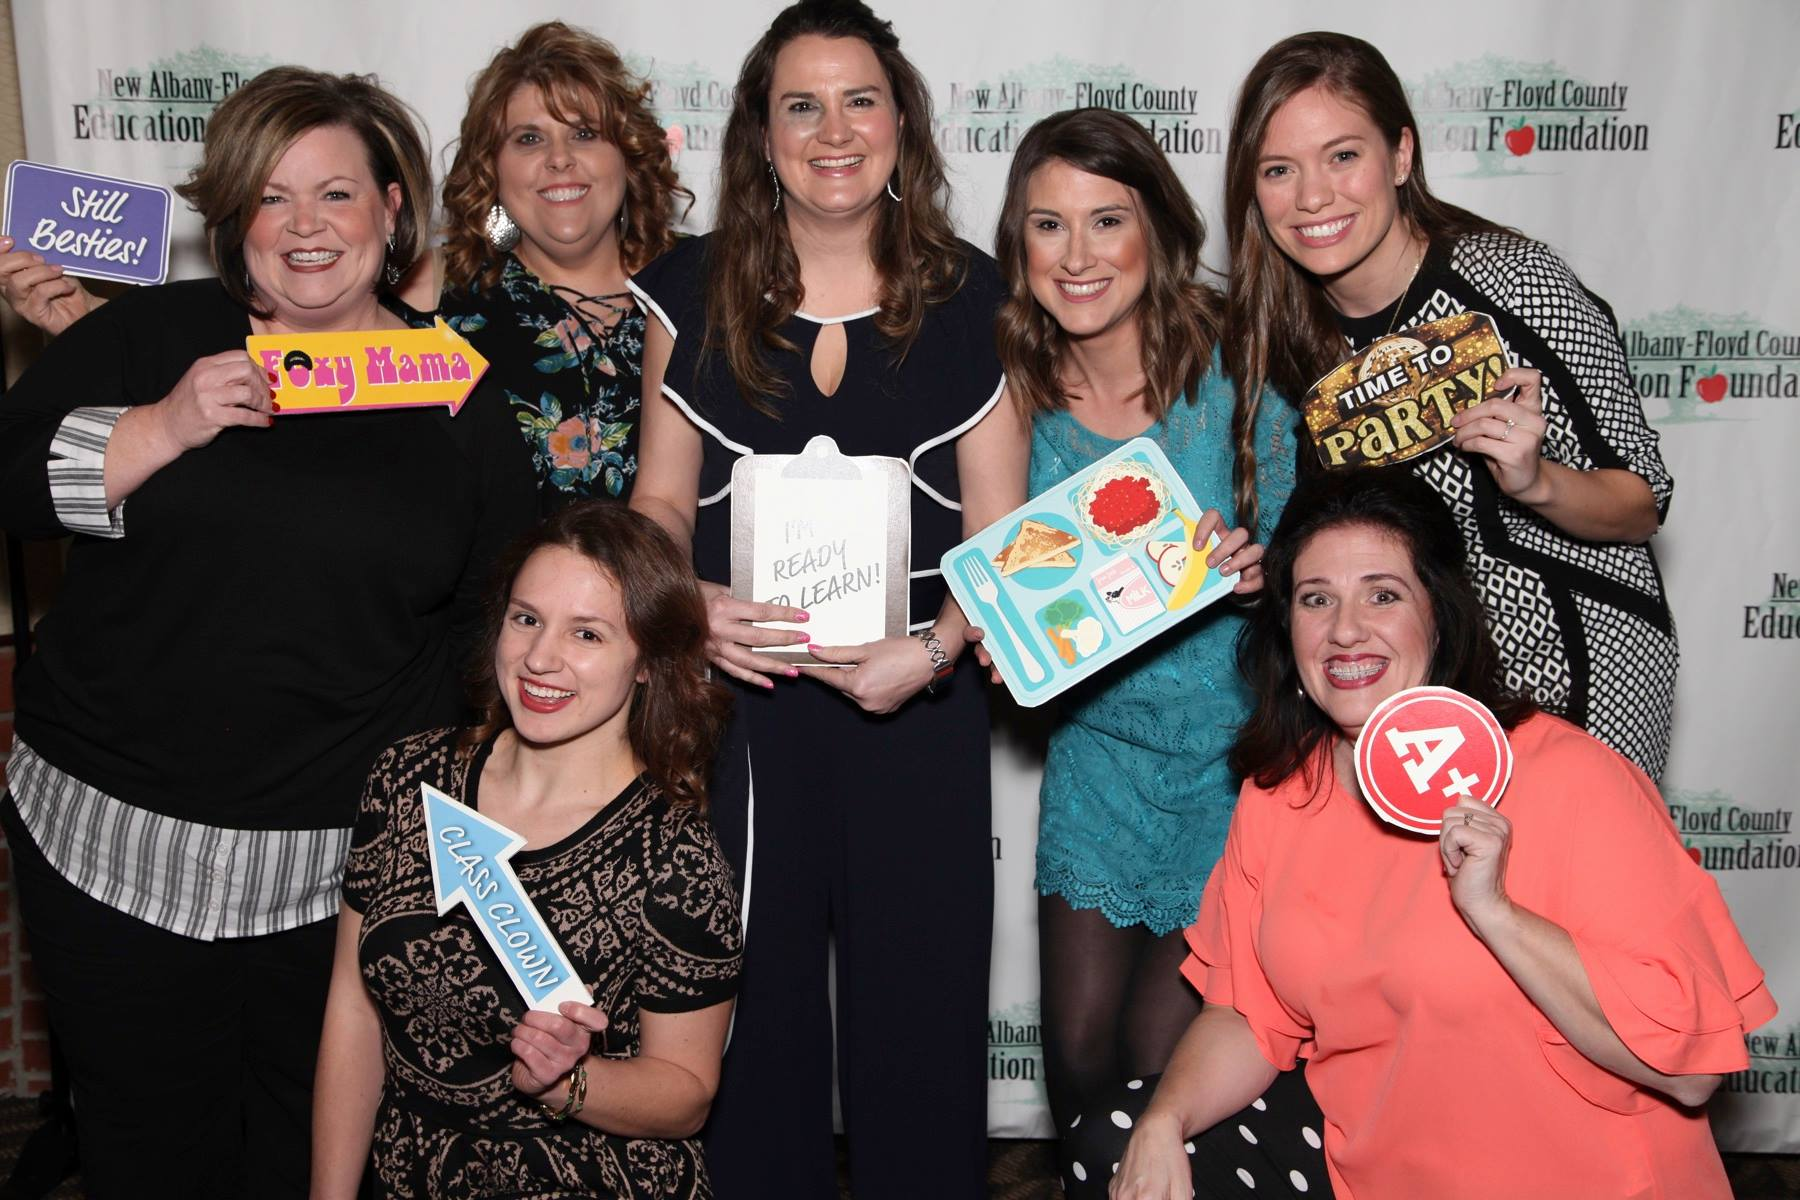 Group of teachers posing in a photo booth with education related props